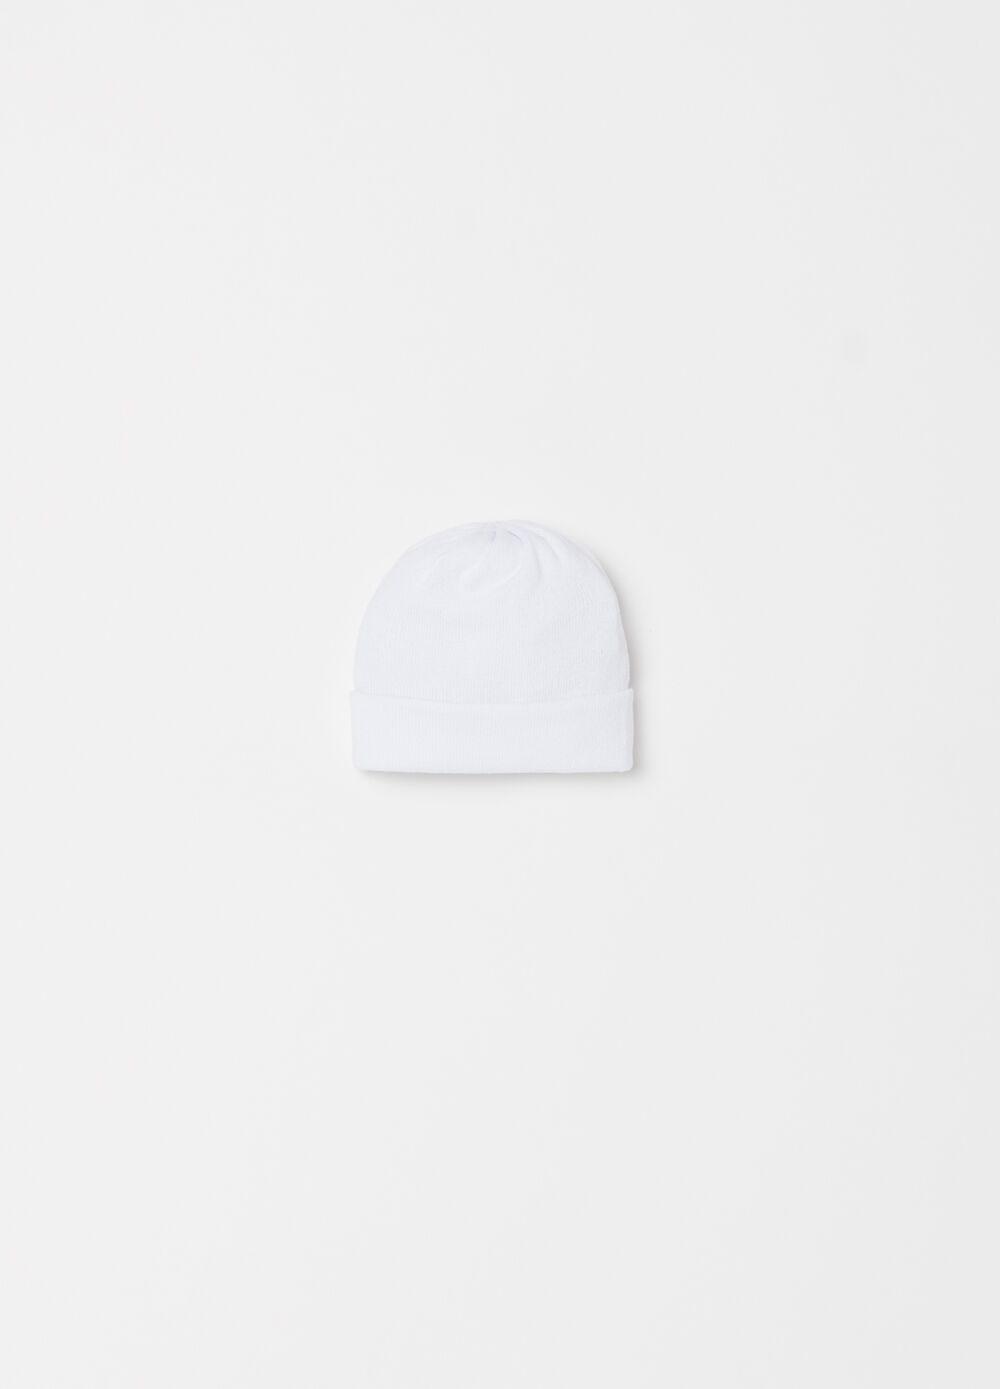 Knitted hat with turned up edge